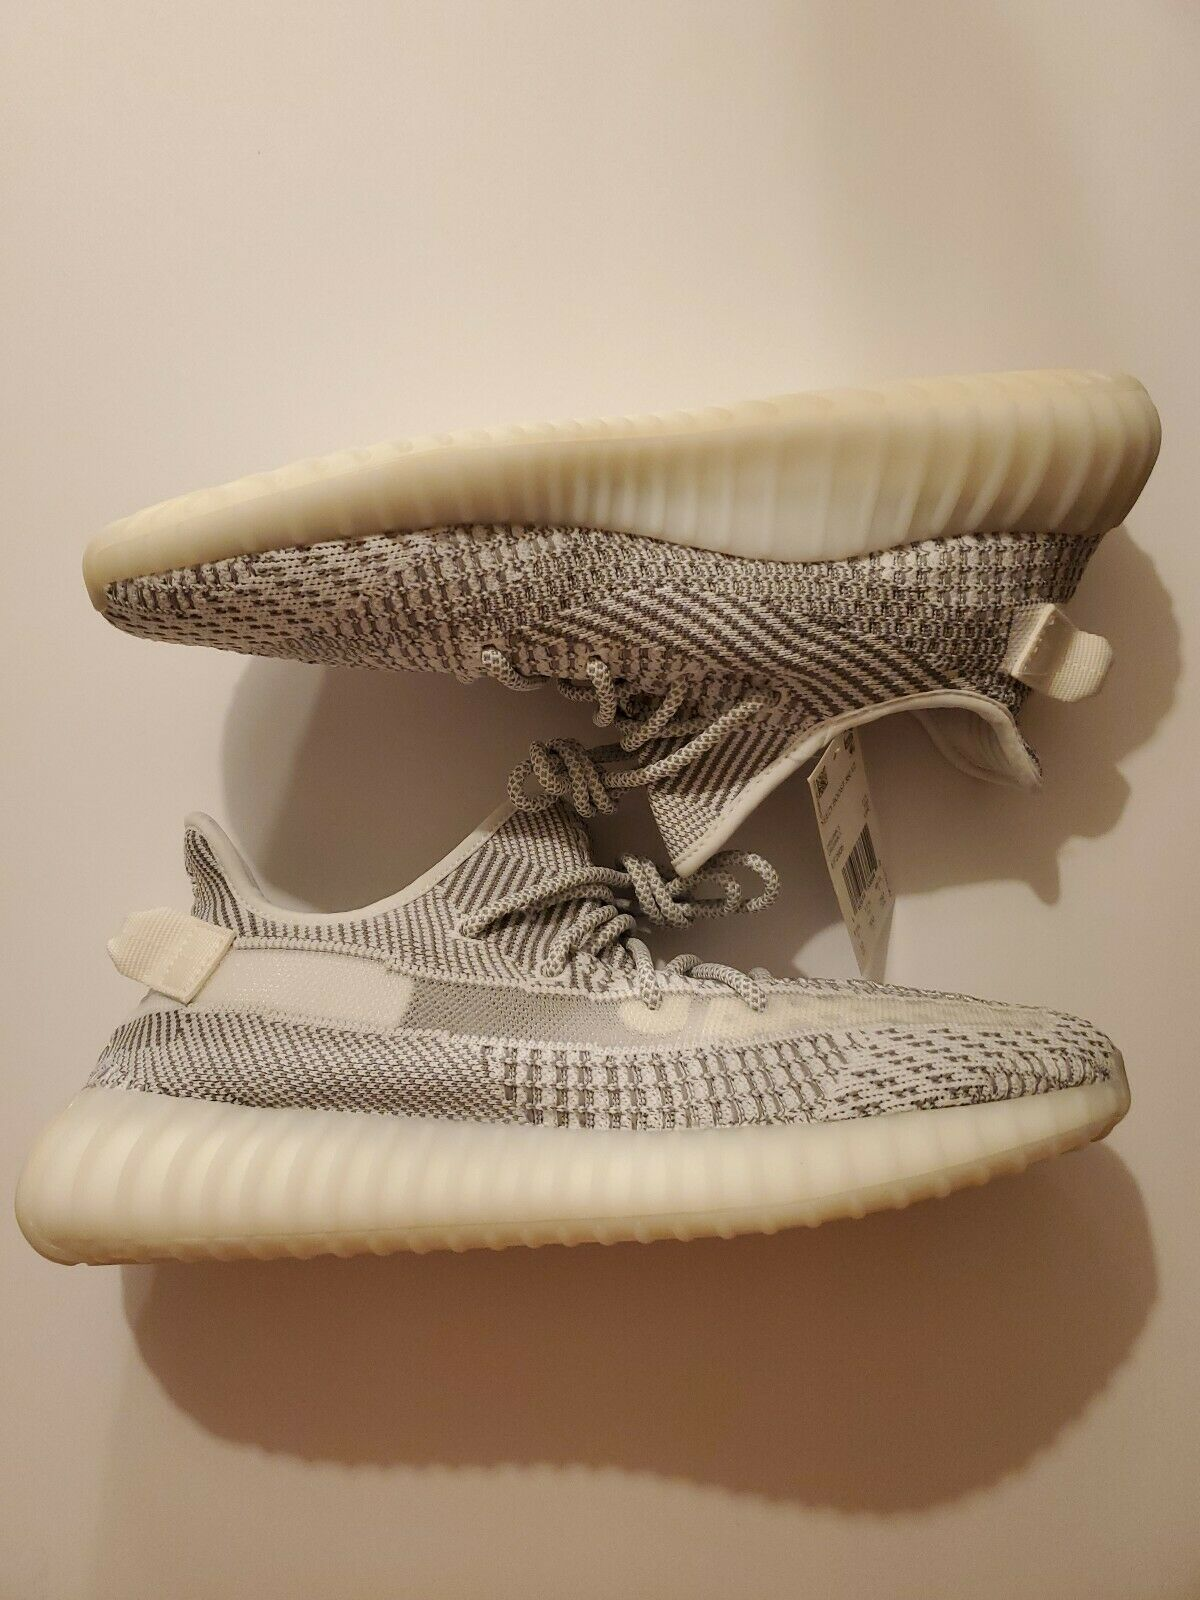 Adidas Yeezy Boost 350 V2 Static EF2905 size 12 non reflective 100% authentic